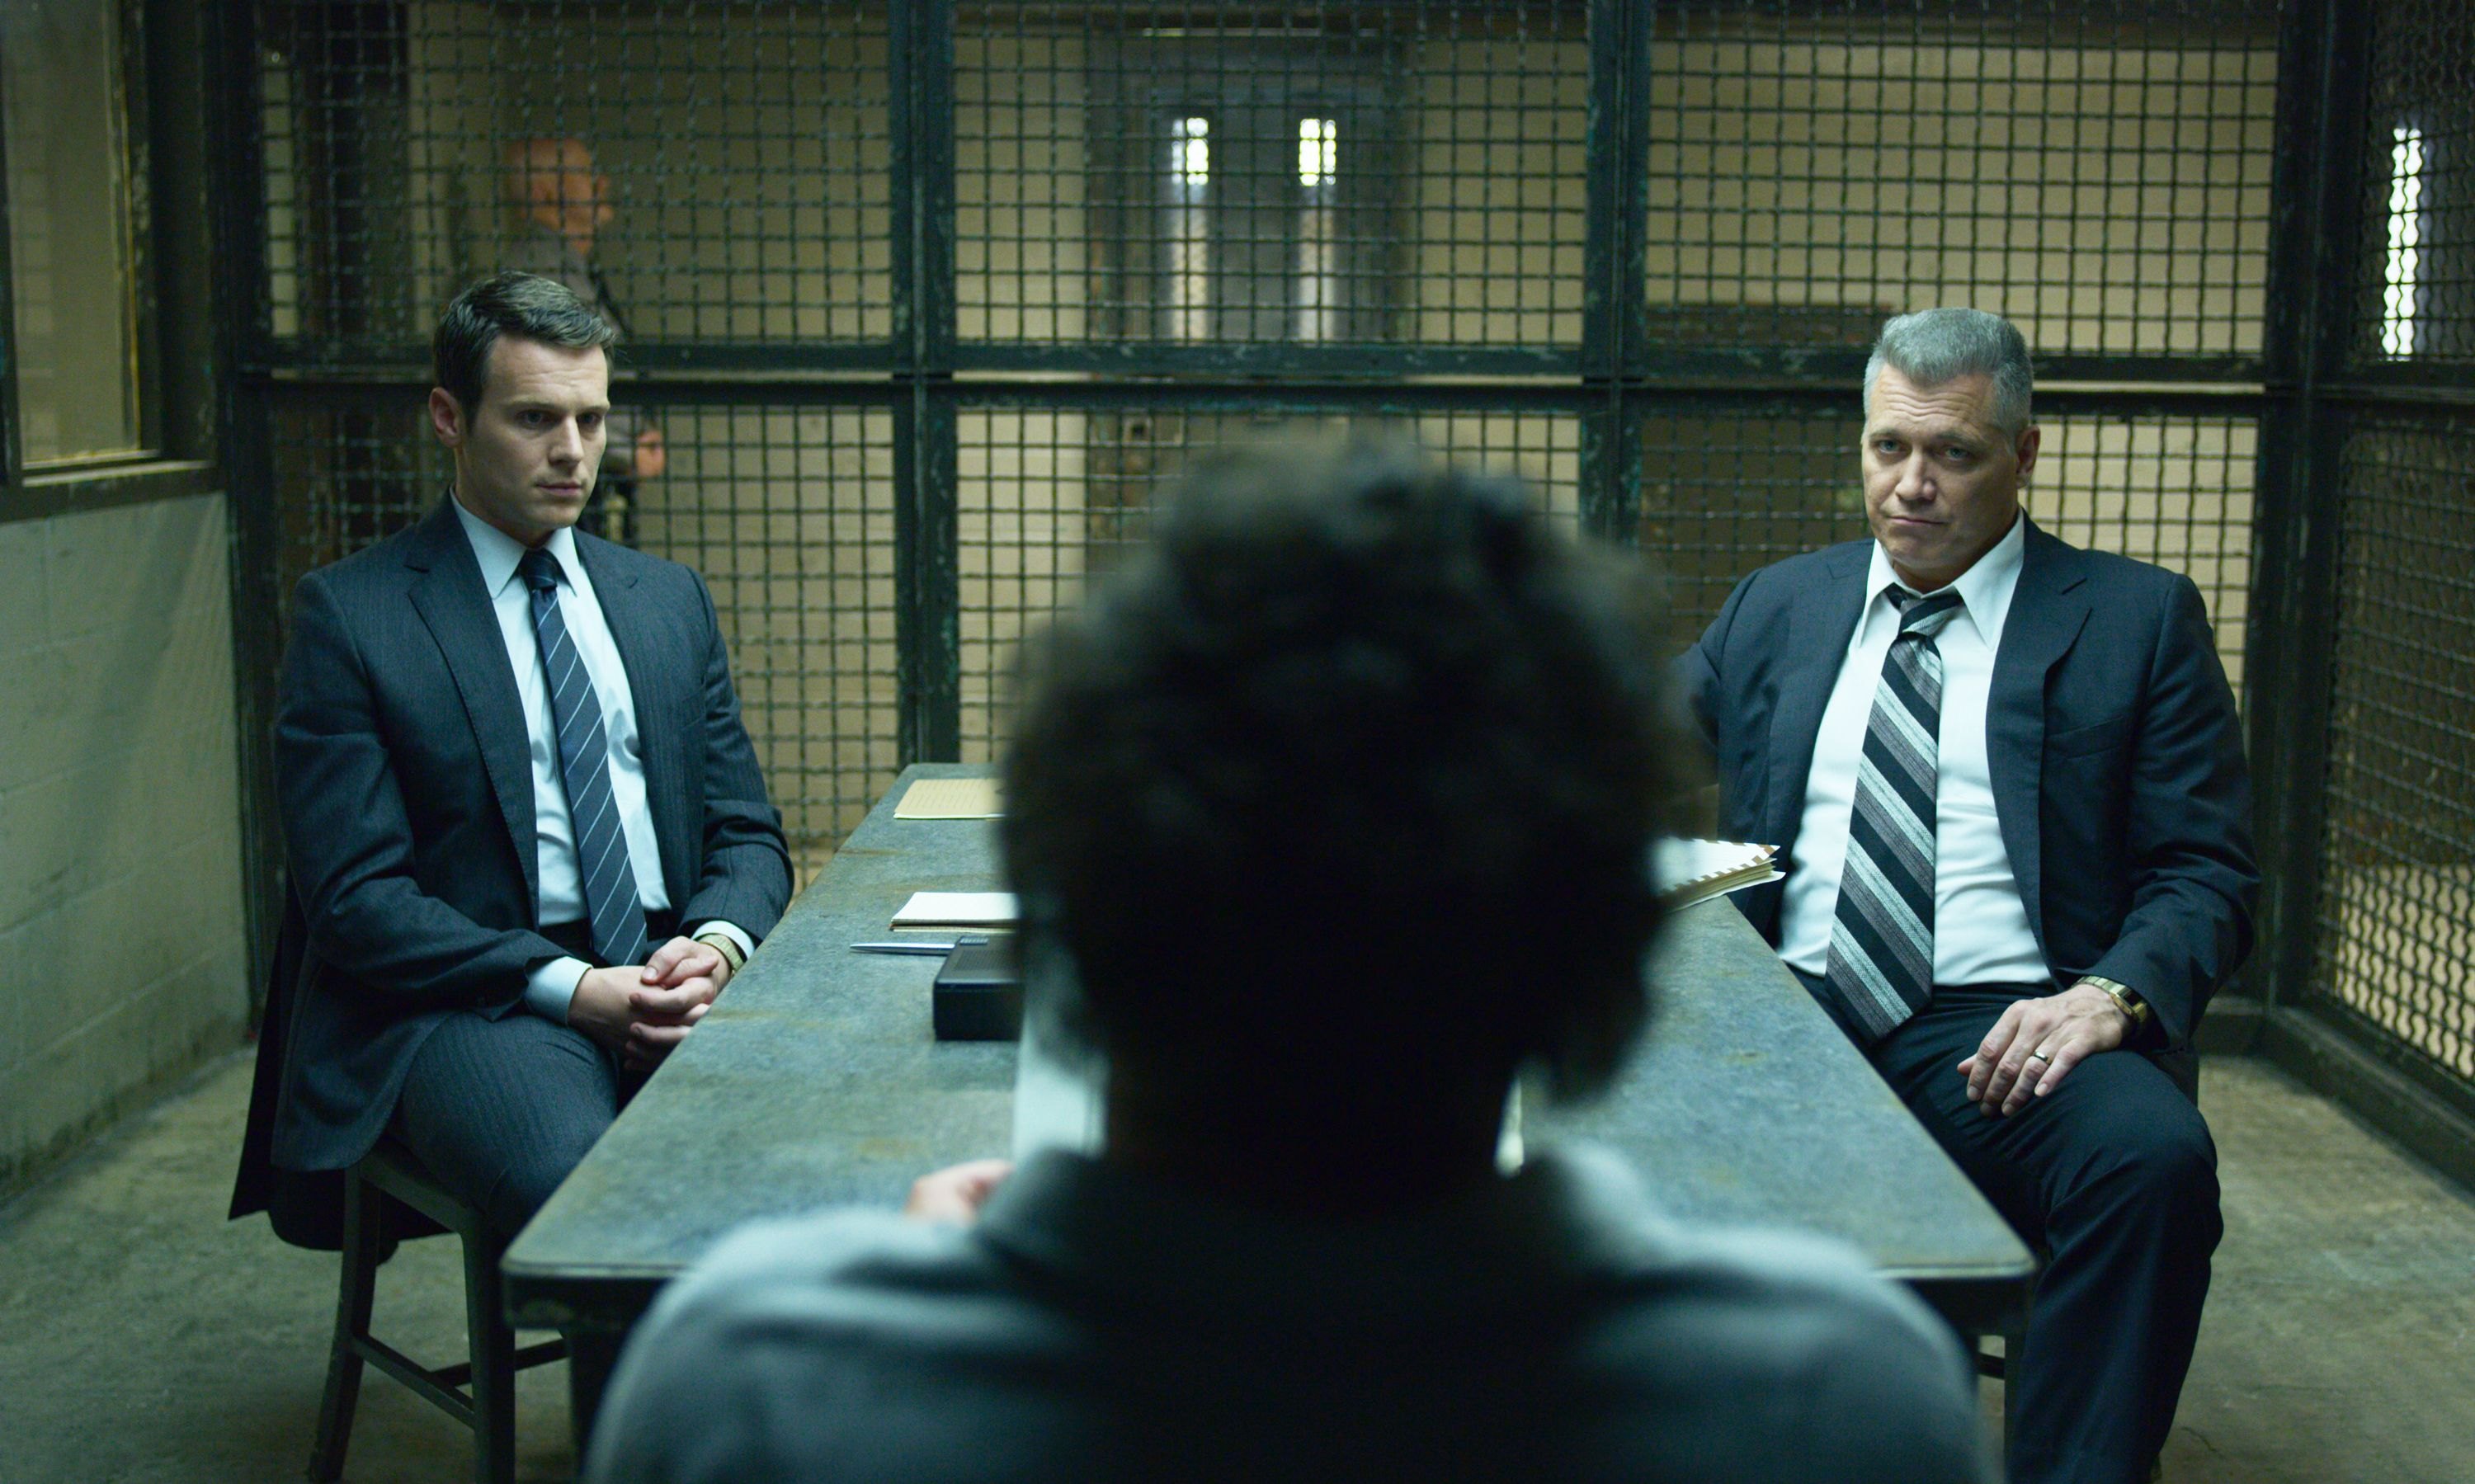 Mindhunter star reveals inspiration behind heart-wrenching season 2 finale moment